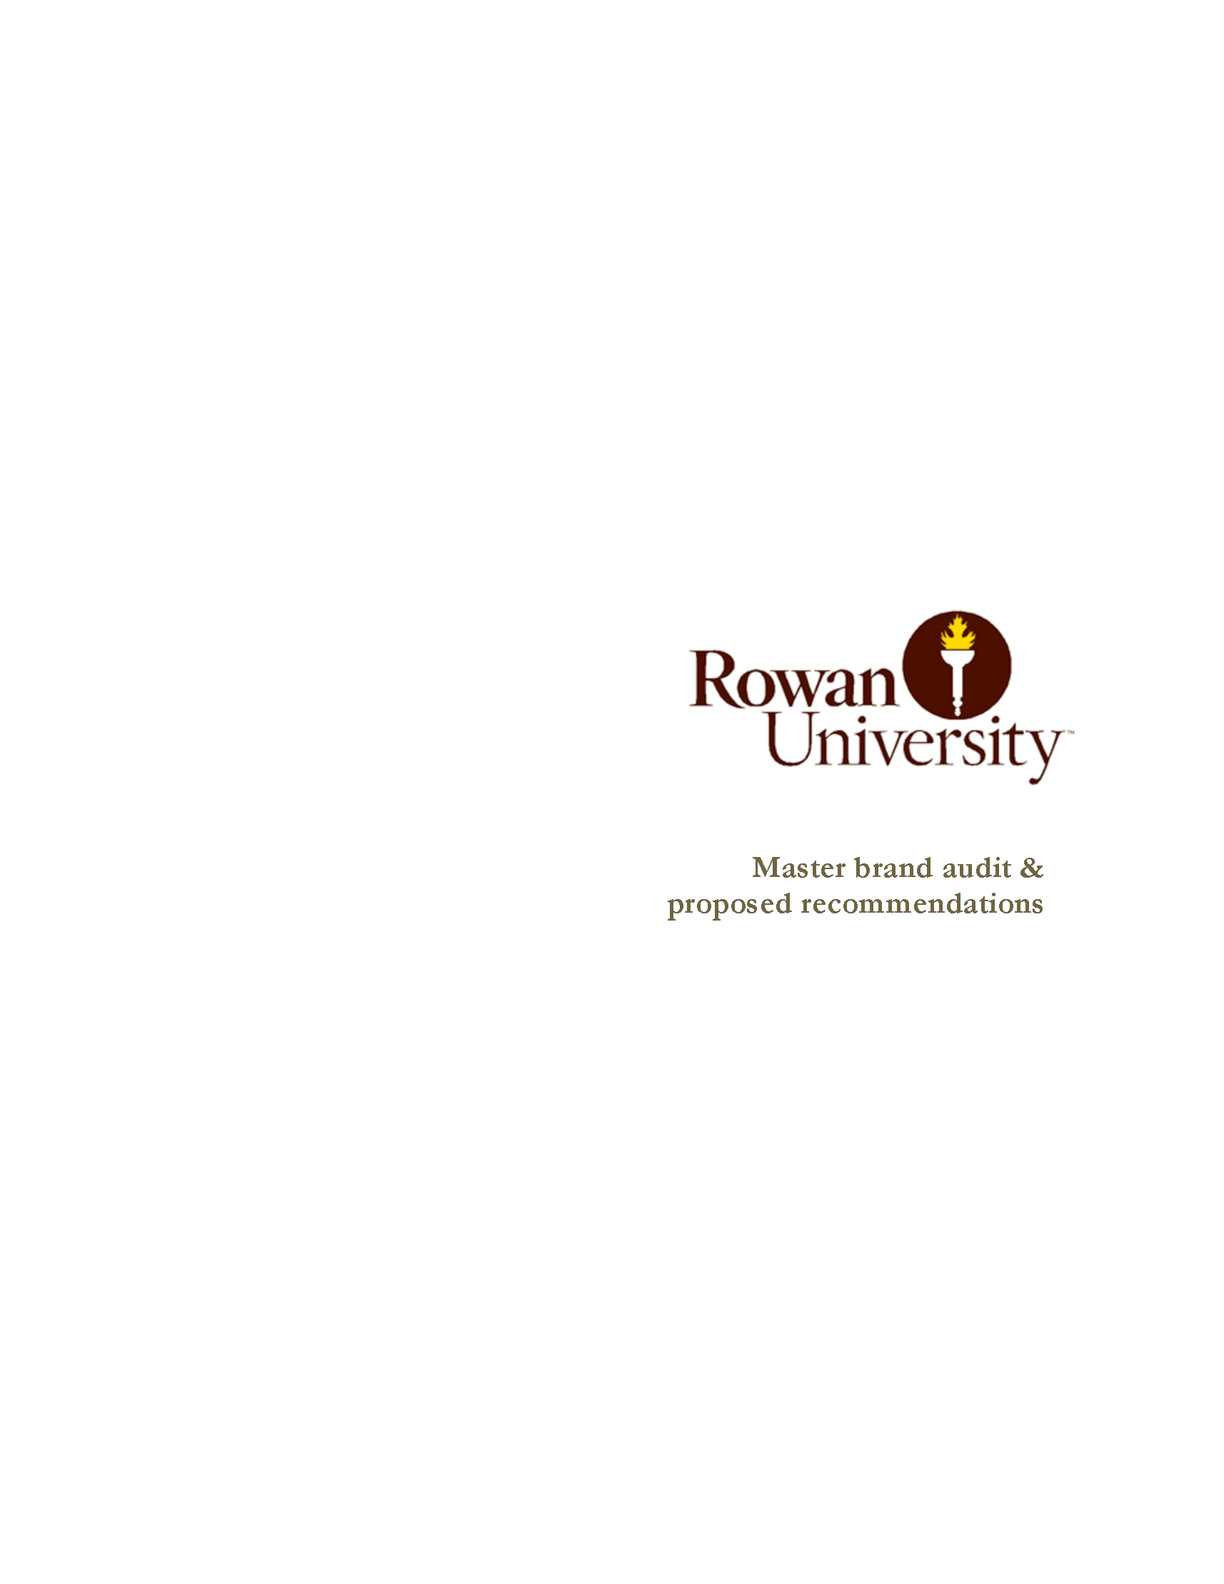 Calam o rowan university master brand audit proposed recommendations